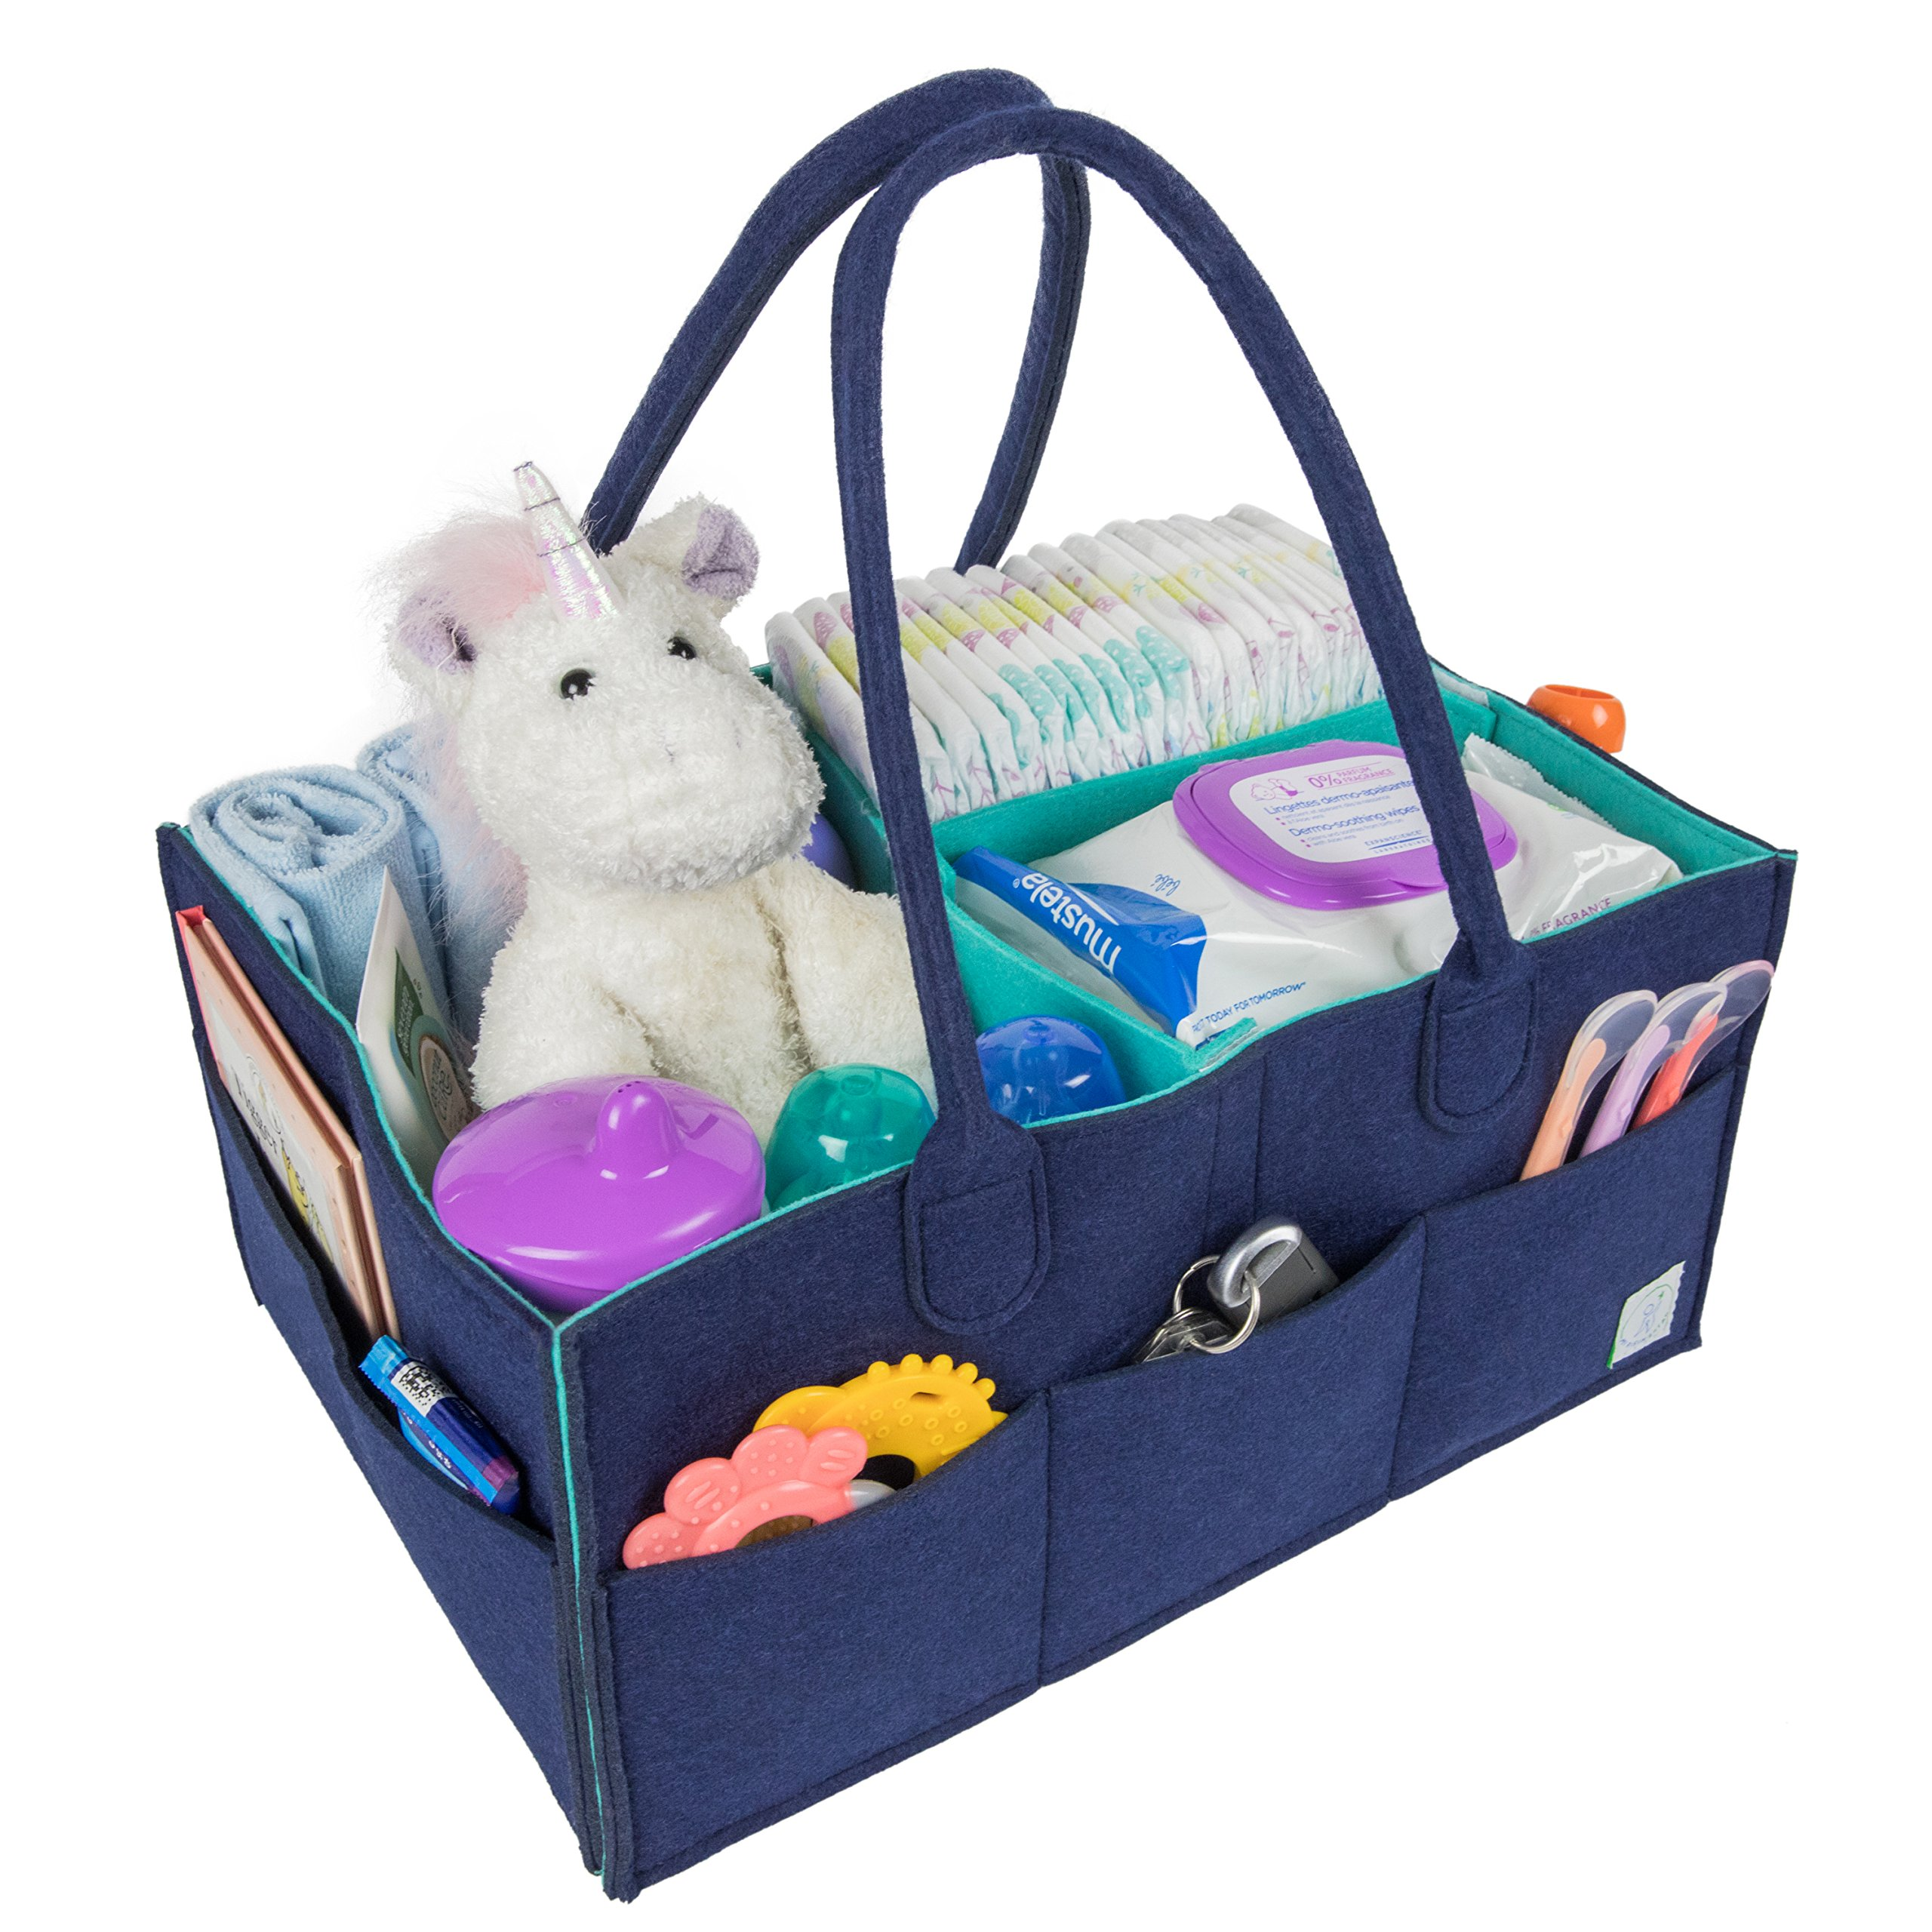 Nursery Diaper Tote Bag Detachable Nappy Diaper Organizer for Changing Table Car Organizer for Diaper /& Baby Wipes Travel Baby Diaper Caddy Bag softeen Baby Caddy Organizer Nursery Storage